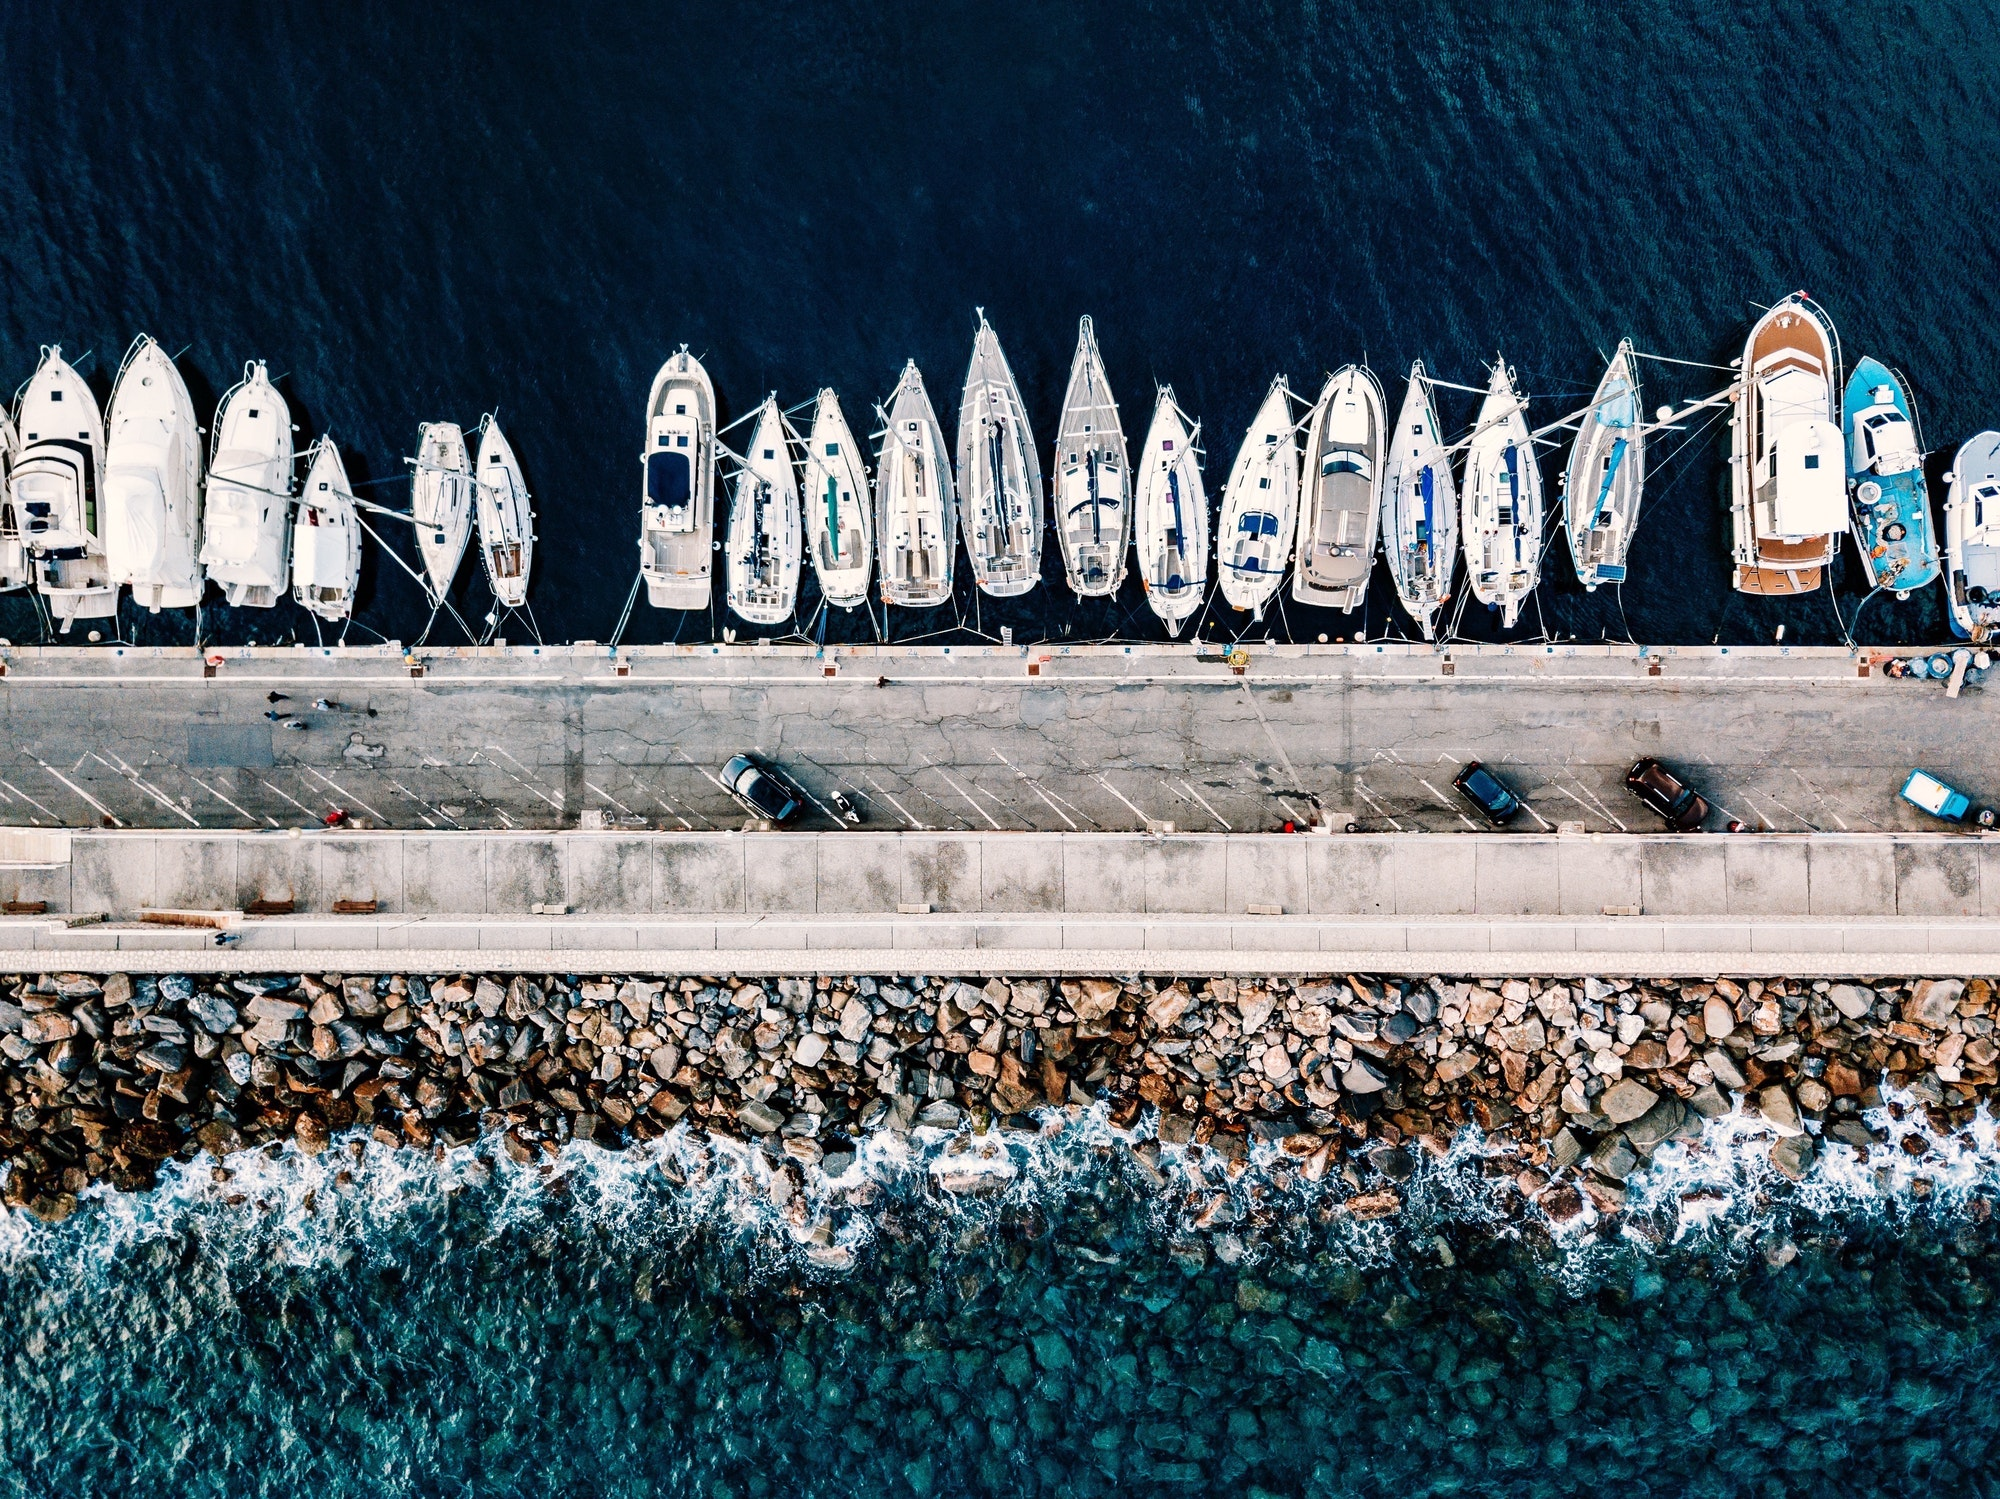 Aerial view of marina with boats and yachts in Italy. Blue sea landscape with white yachts top view